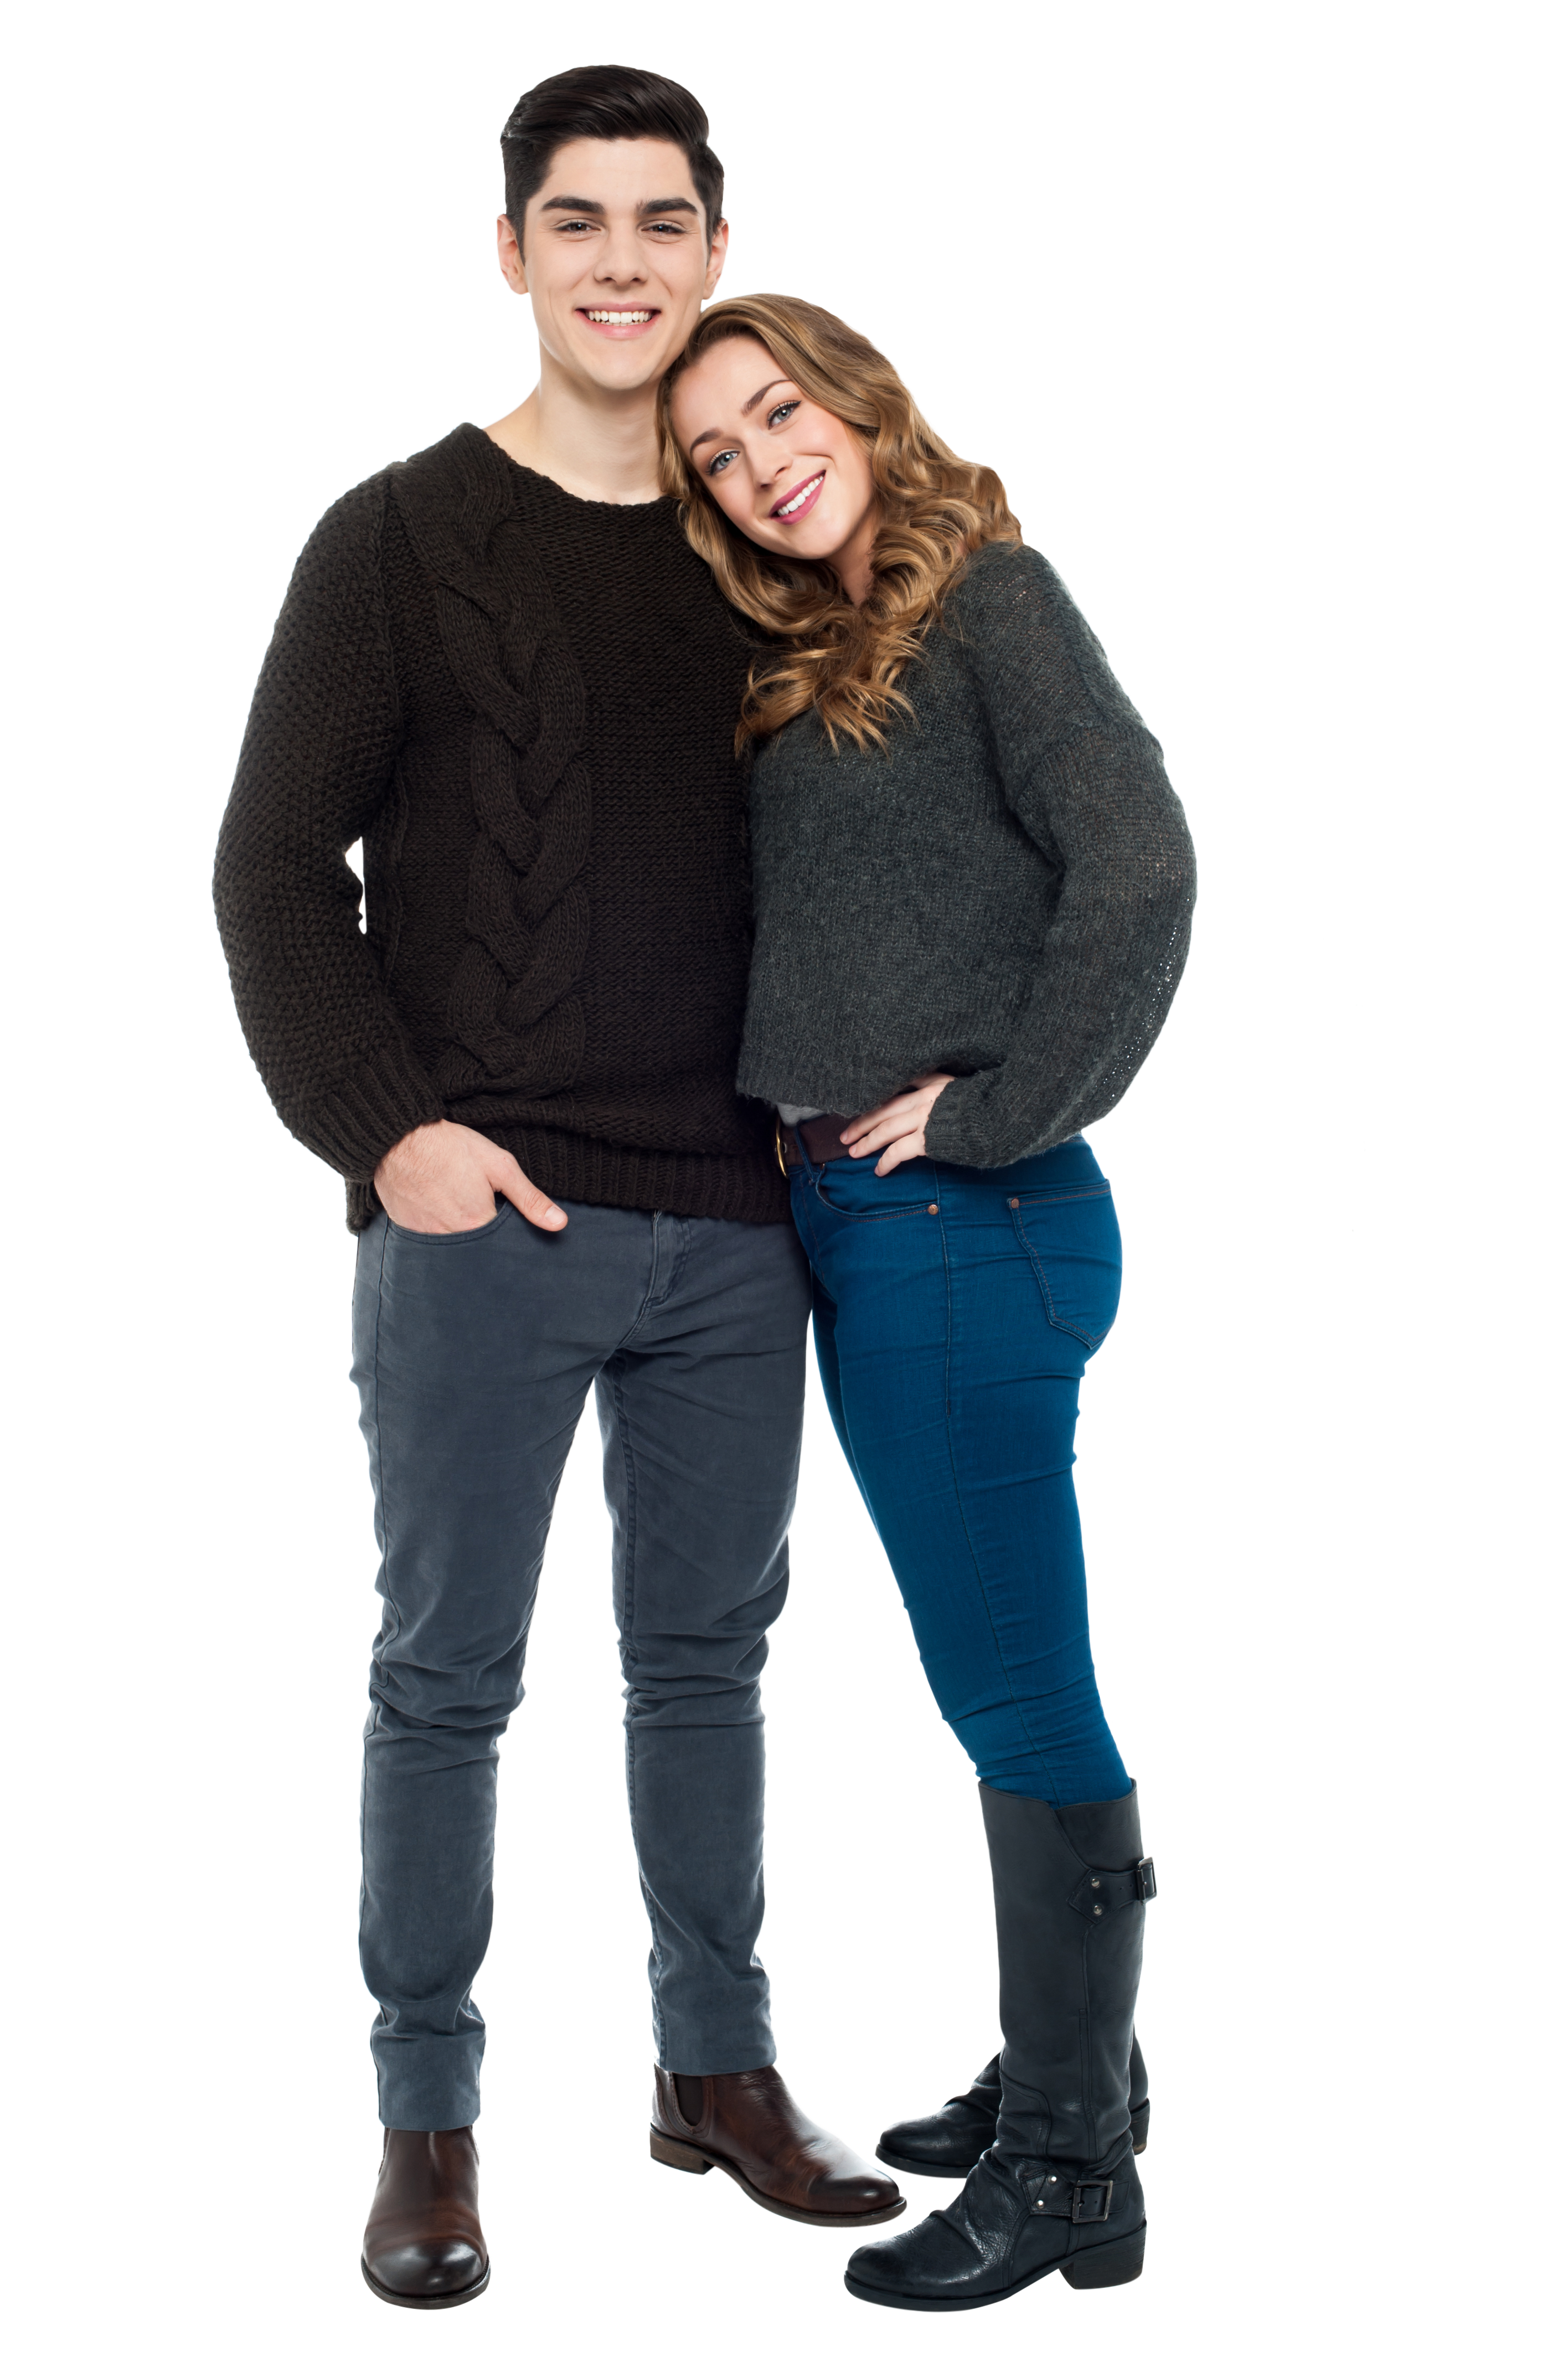 Couple PNG Image.